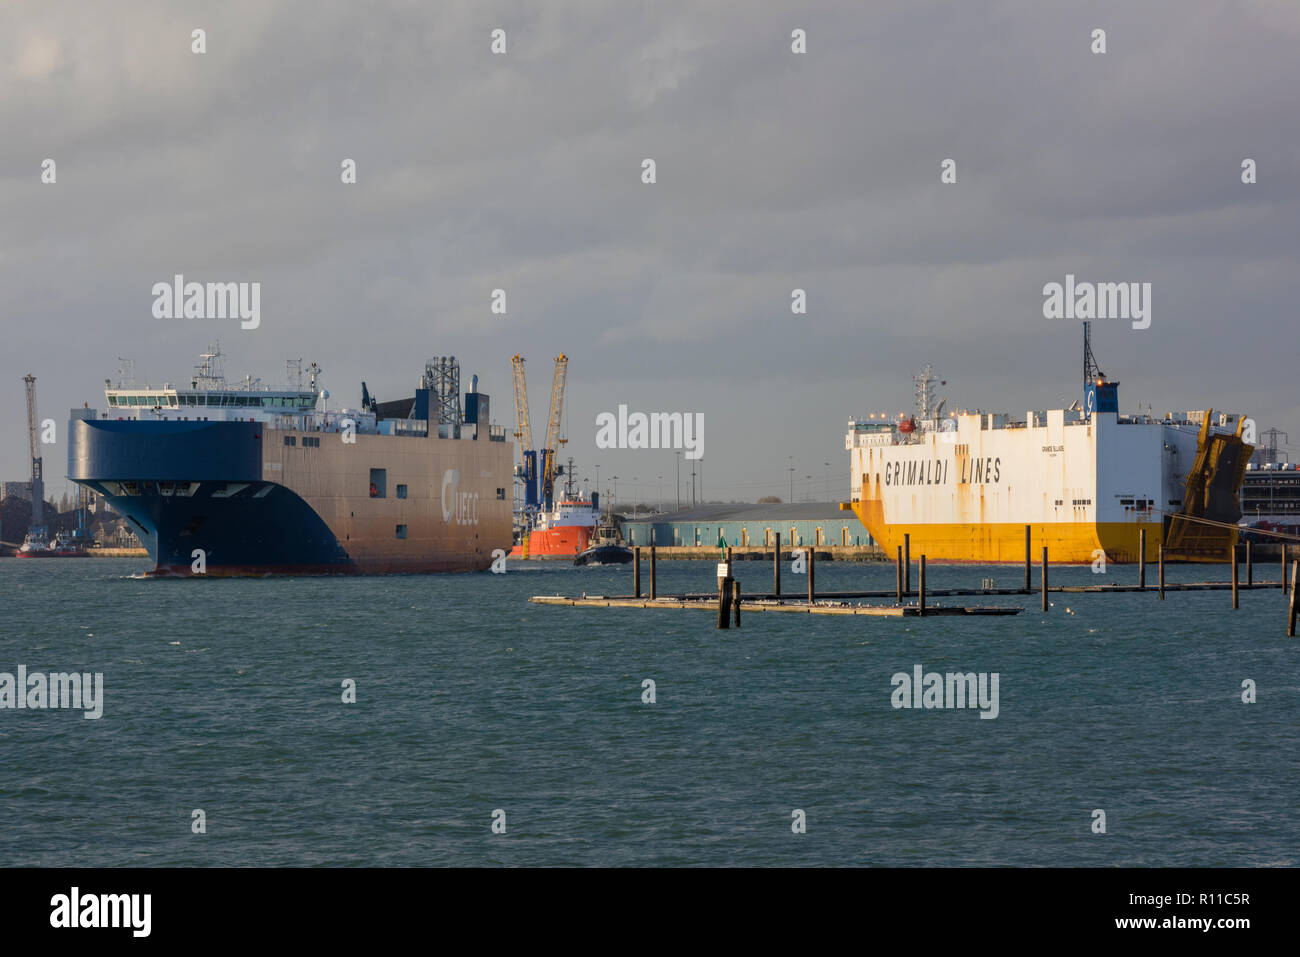 car transporter shipping and ships for carrying cars and vehicles in the busy harbour at the port of southampton docks. car carriers. - Stock Image